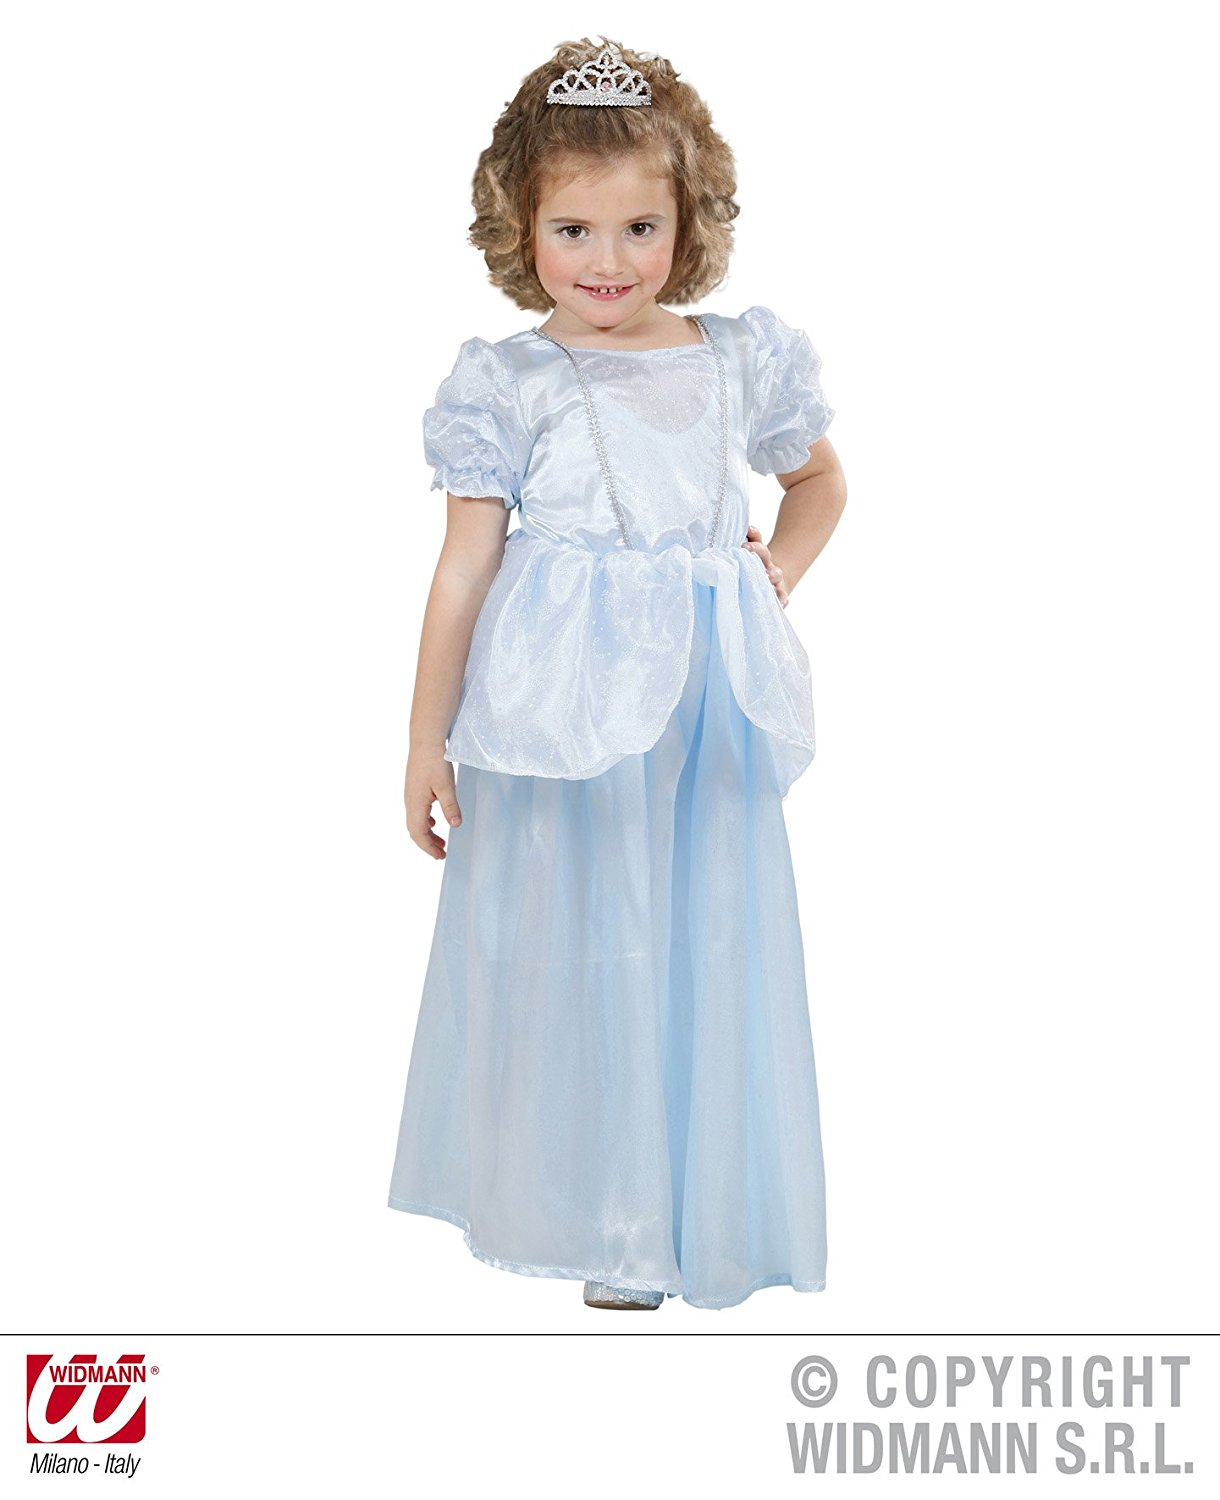 31ba68d168ded1 Get Quotations · Children's Princess Dress Light Blue Costume Baby 1 2 yrs  98cm for Medieval Knight Fancy Dress